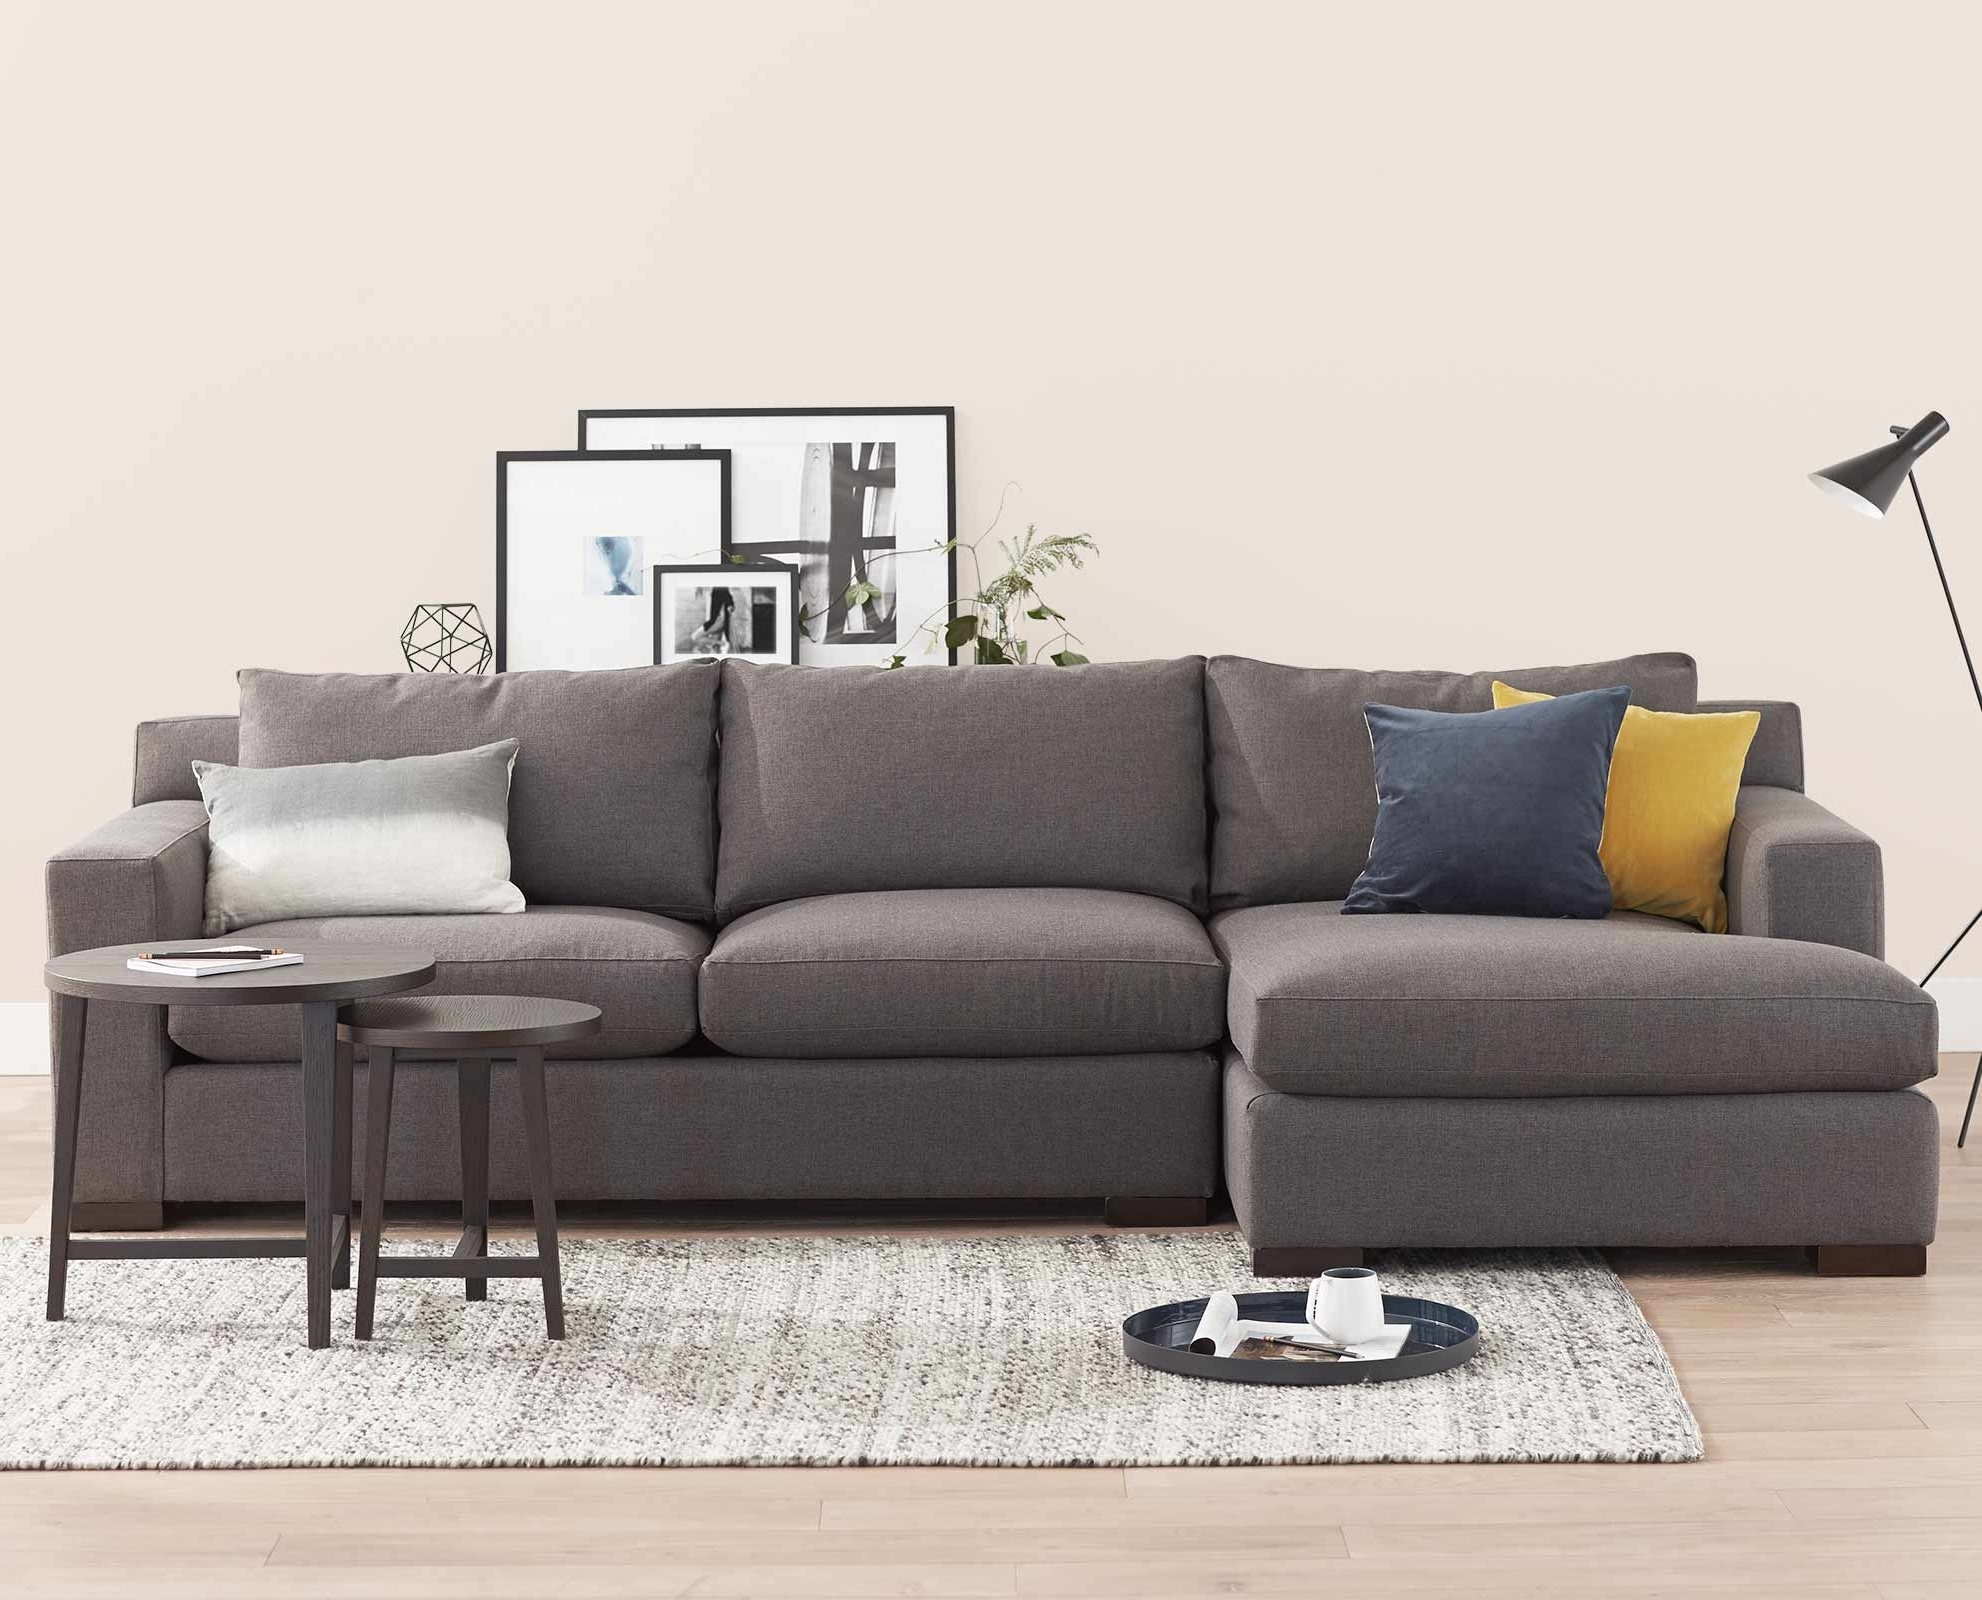 Most Recent Scandinavian Designs – Always Cozy And Always Classic, The Aida For Eco Friendly Sectional Sofas (View 13 of 20)